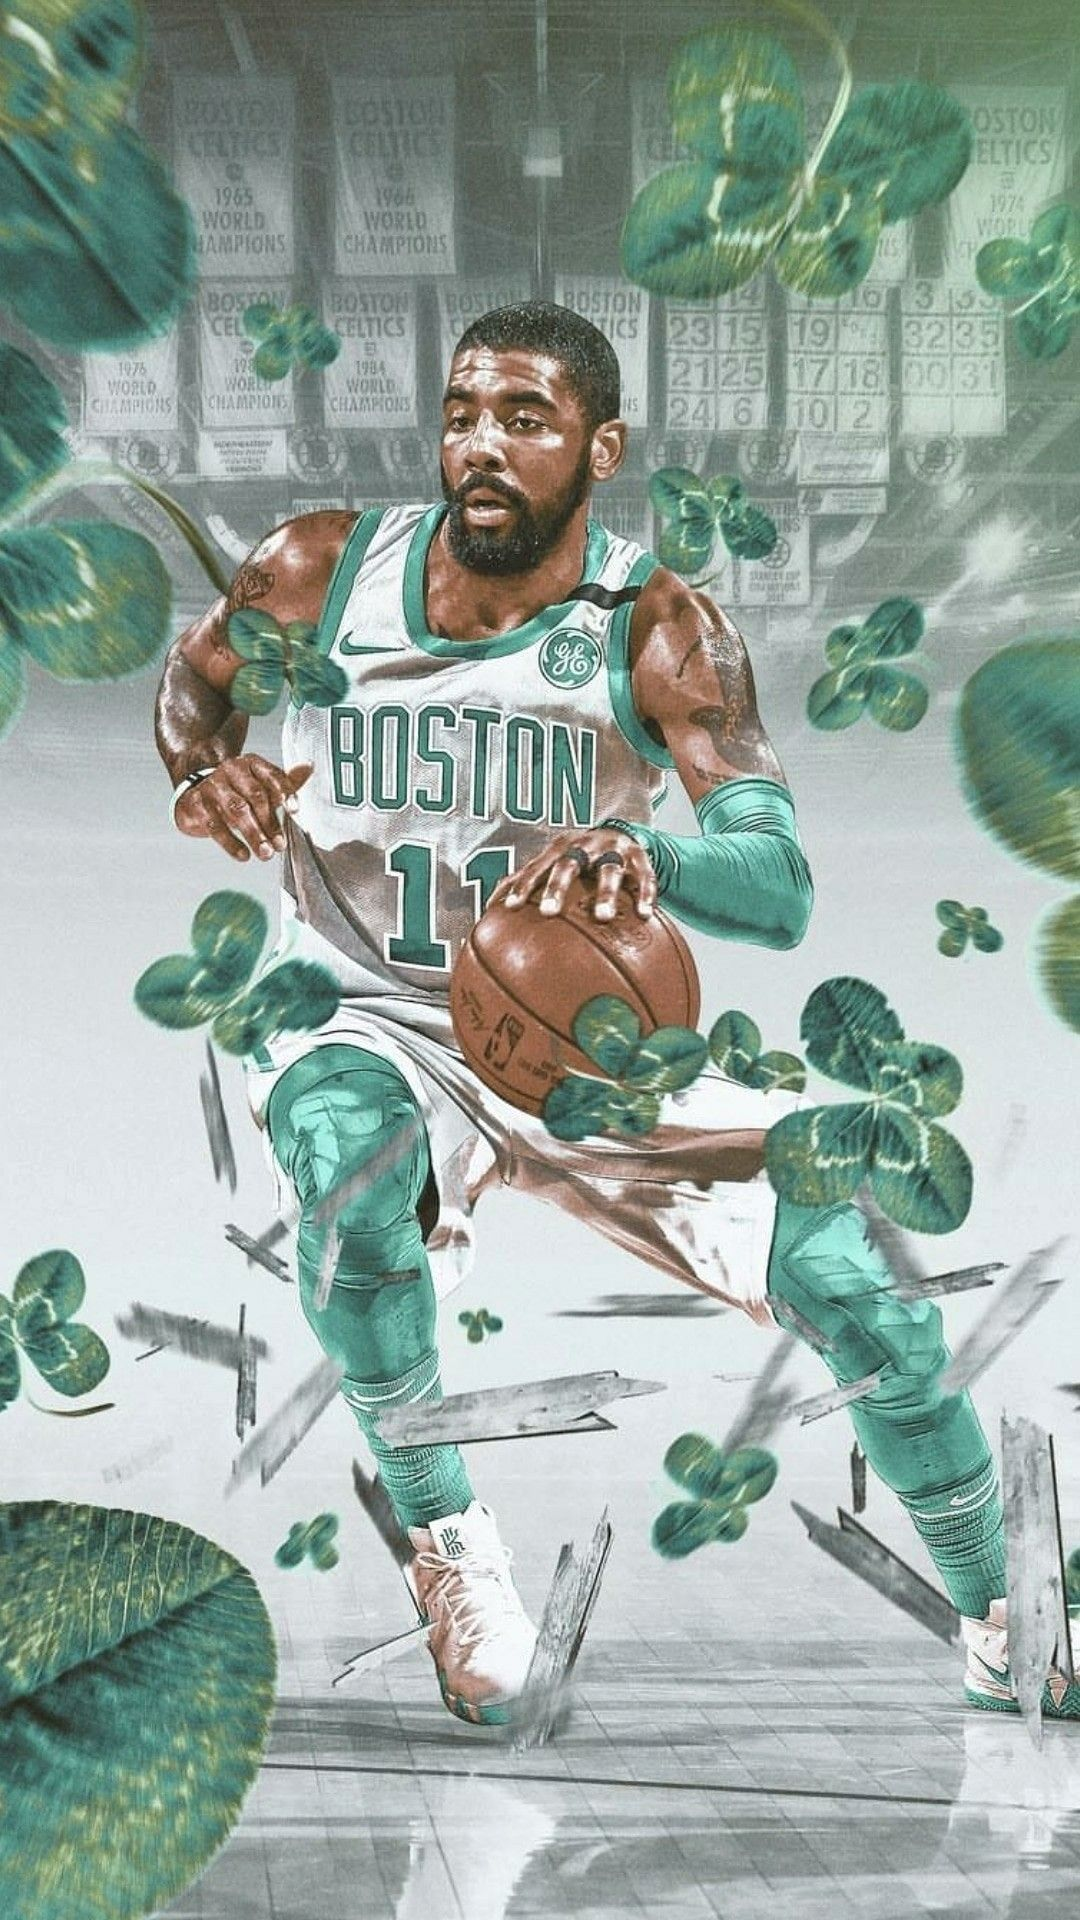 Kyrie Irving Wallpaper Ios Kyrie Irving Wallpaper Android